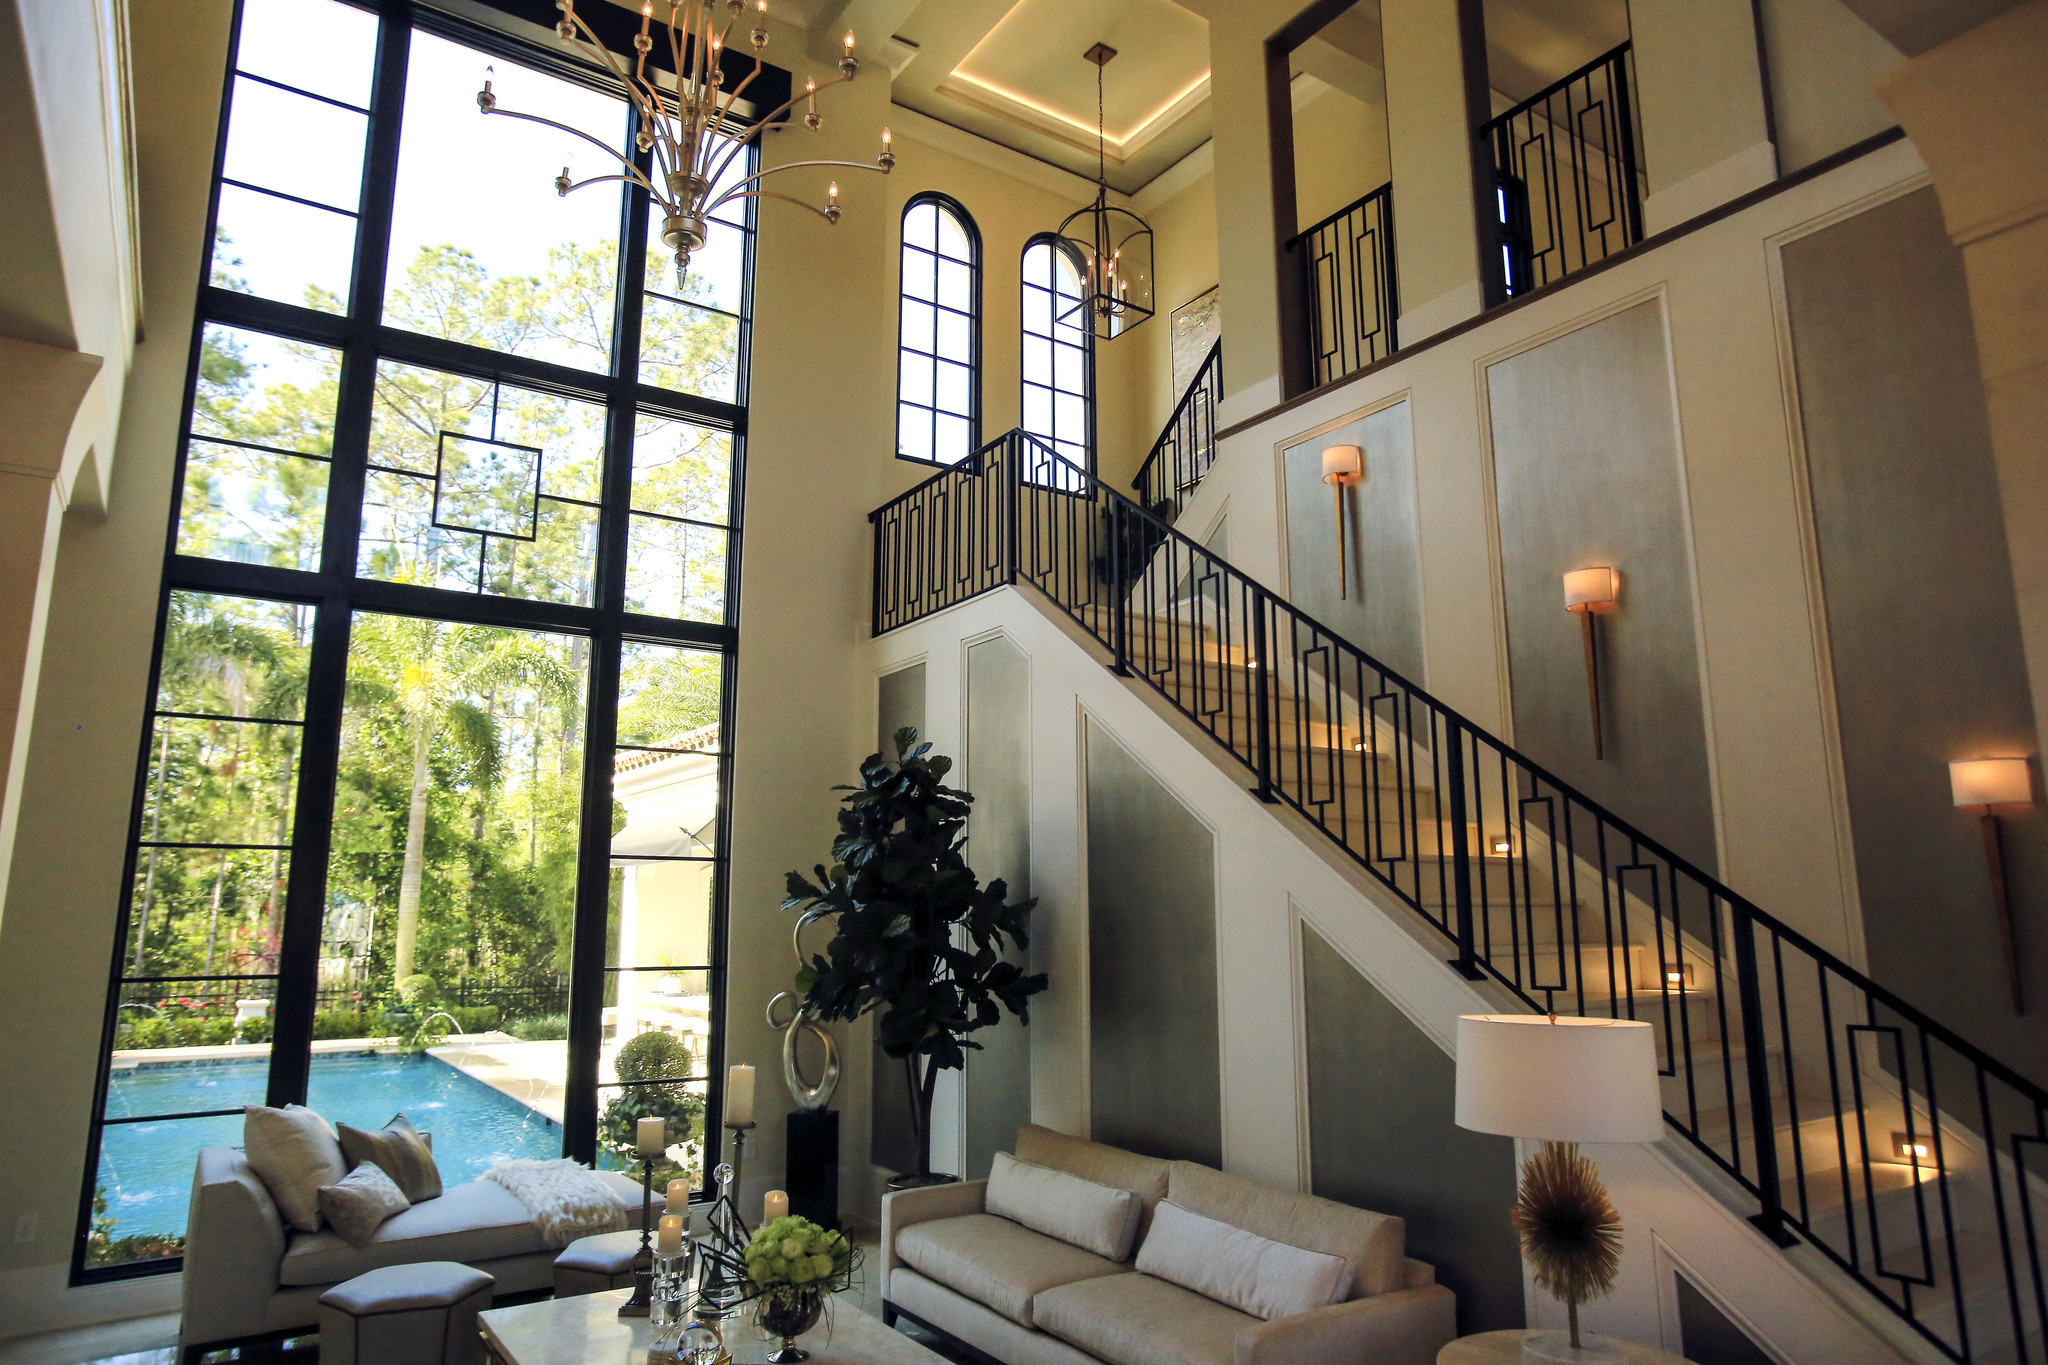 Price Of Entry At New Orlando Luxury Enclave 5 Million